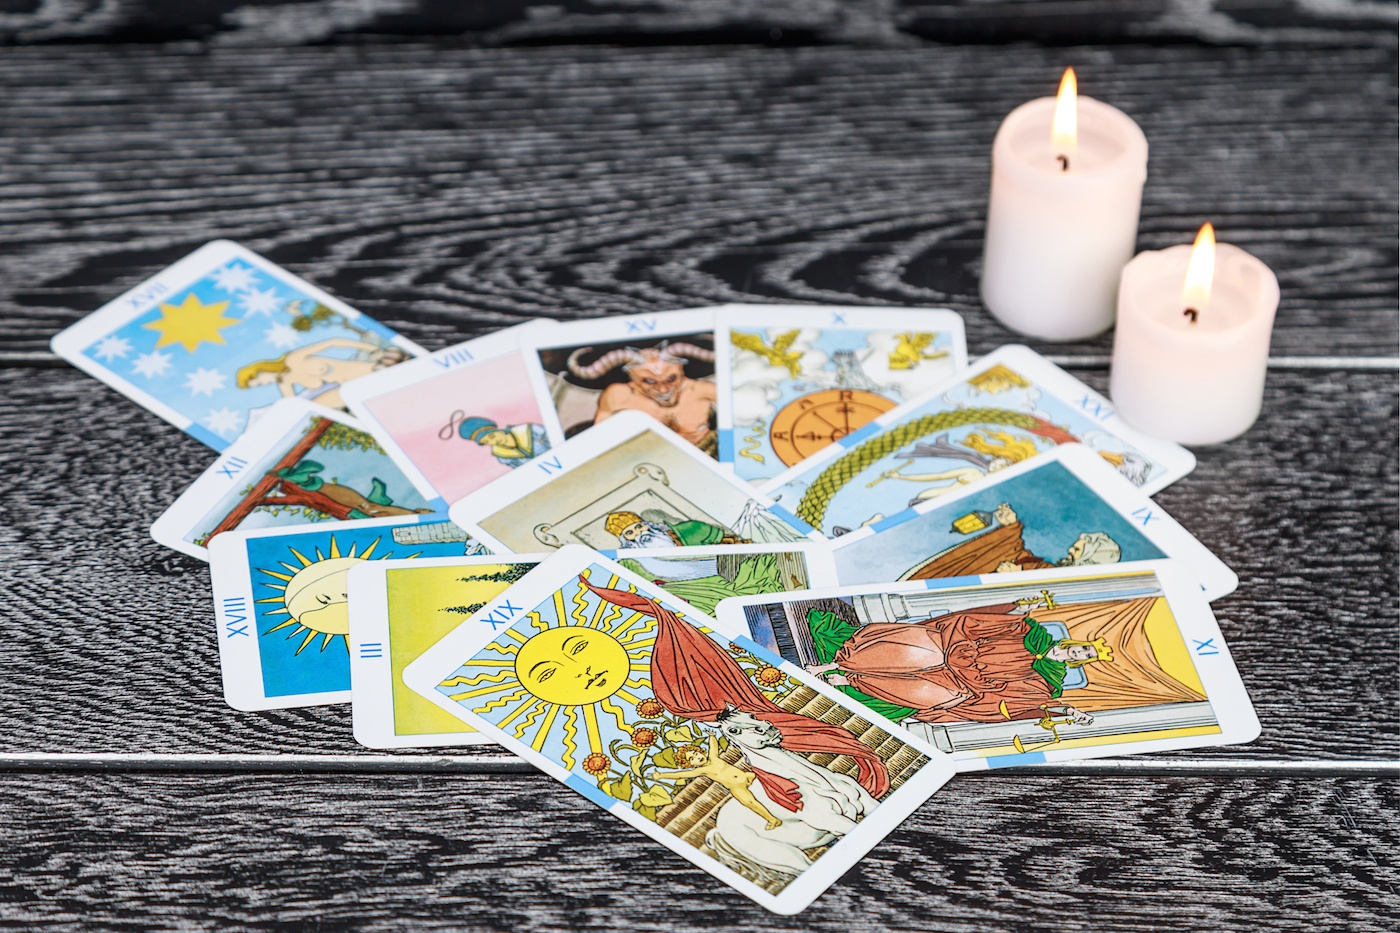 Thumbnail for 5 ways to find the tarot card that best represents you, according to an energy worker